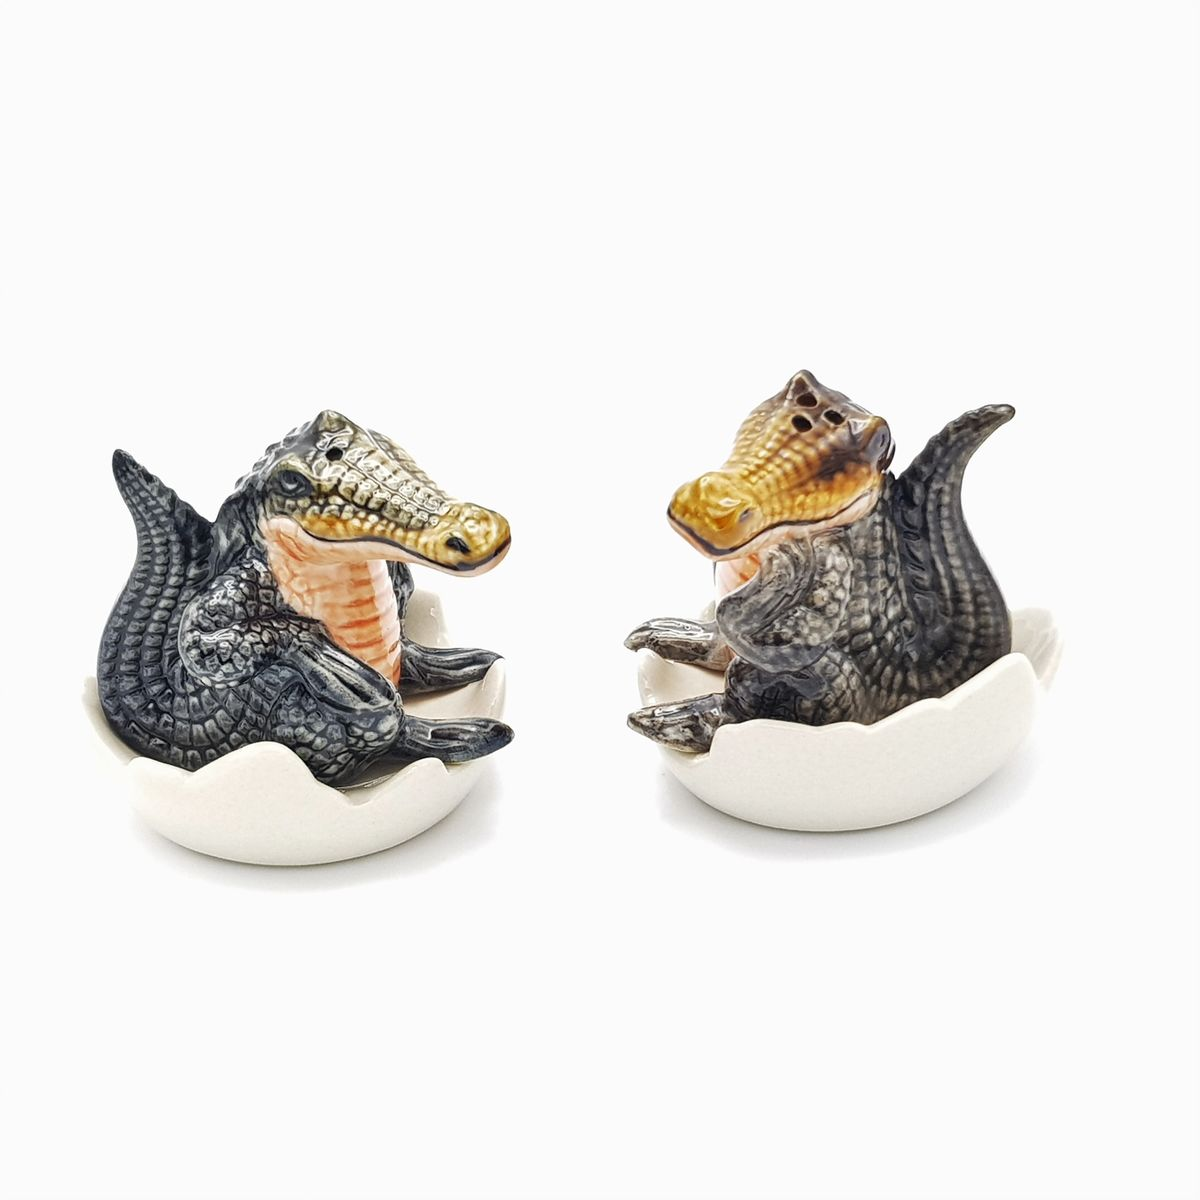 Make your dinner table setting a snap! with these beautiful crocodile salt and pepper shak